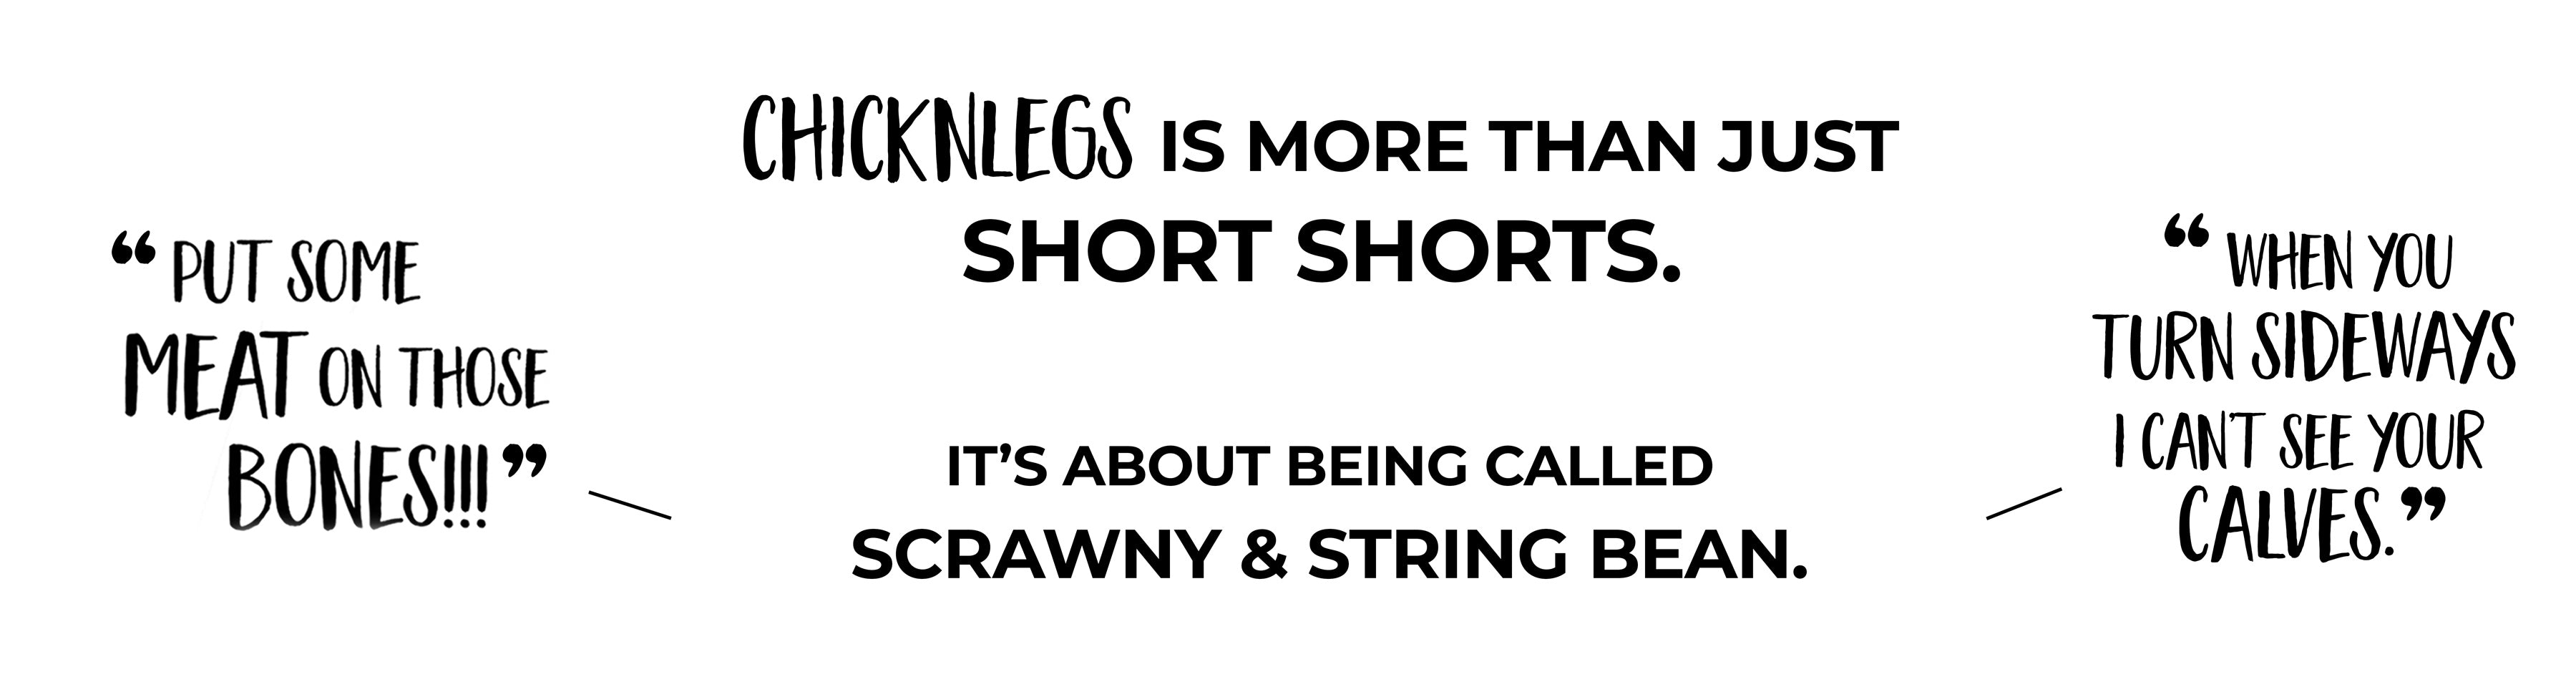 ChicknLegs is more than just short shorts.